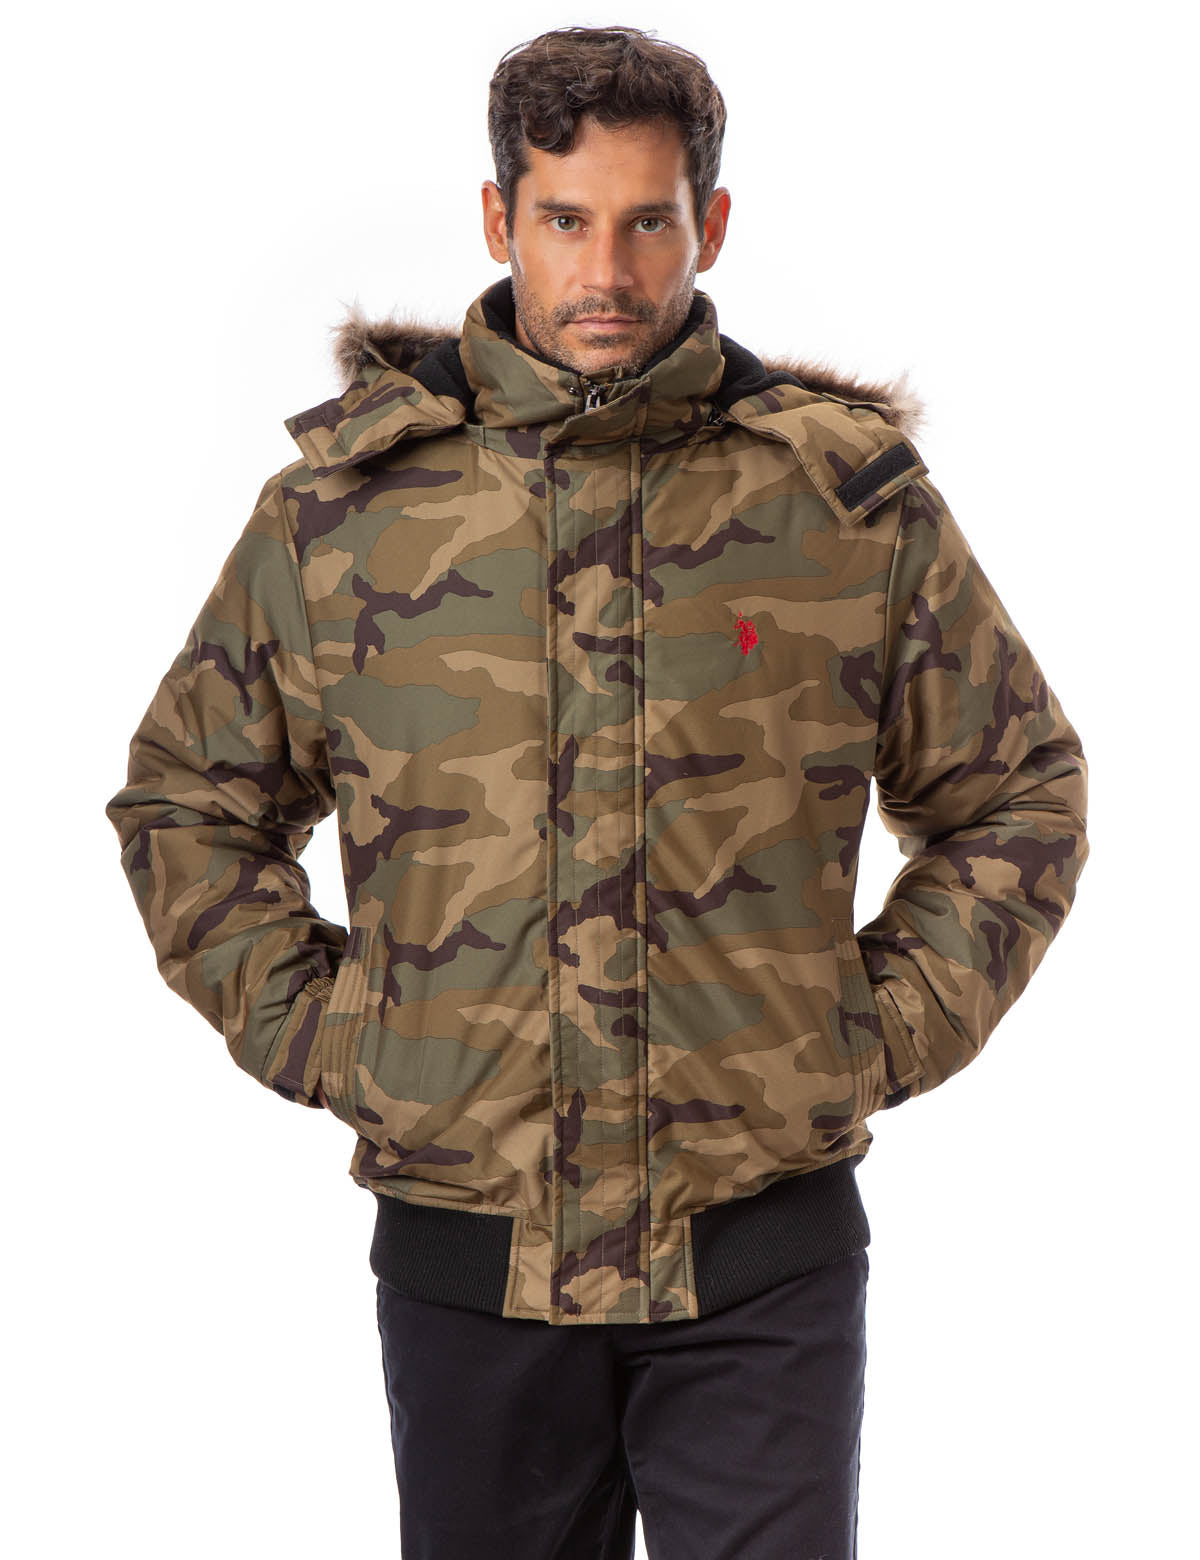 CAMO FAUX FUR TRIMMED JACKET - U.S. Polo Assn.